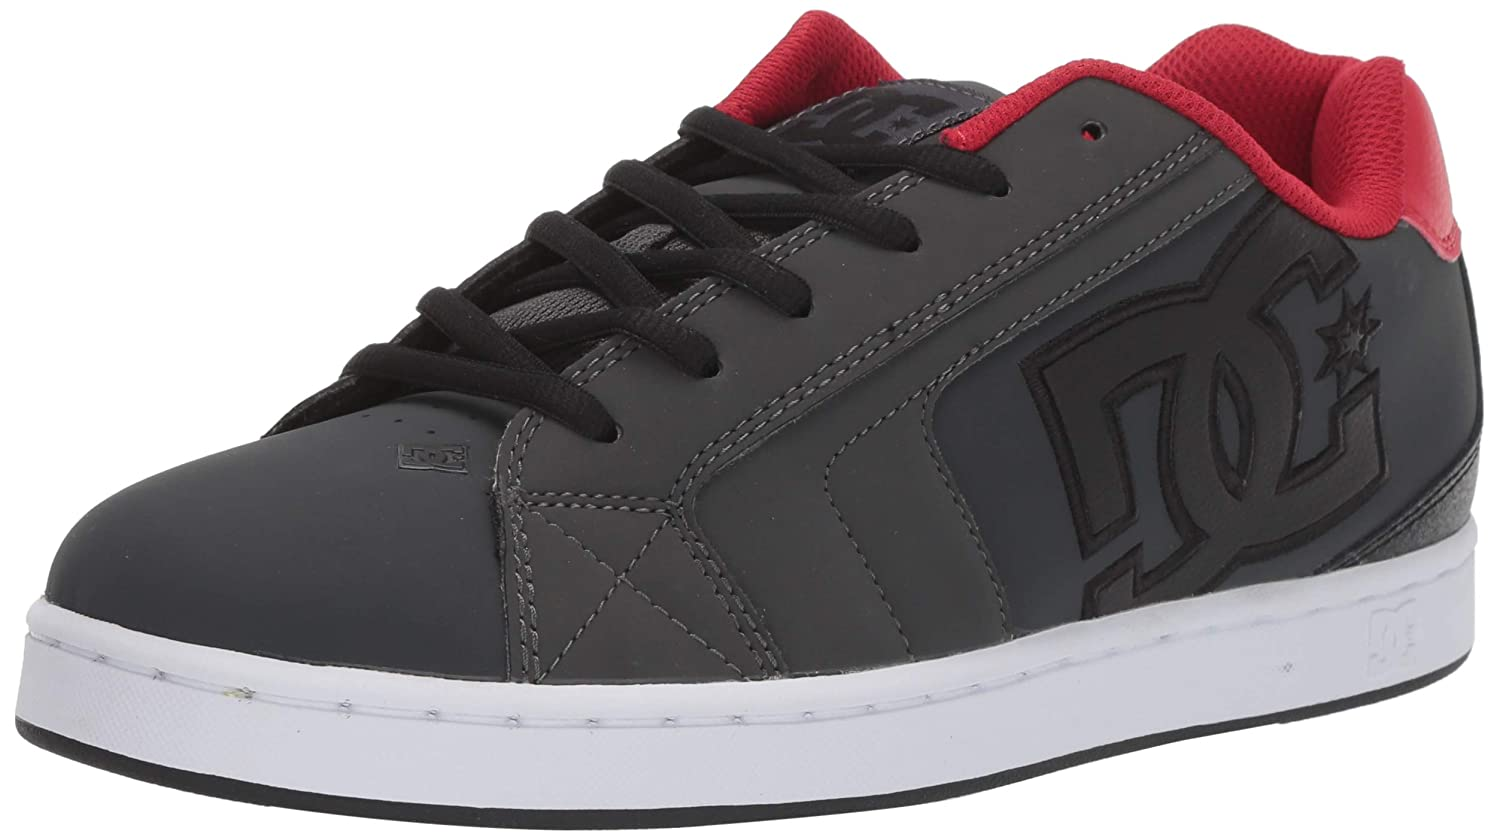 gris Dark rouge DC chaussures Net chaussures, Chaussures basses homme 45 EU